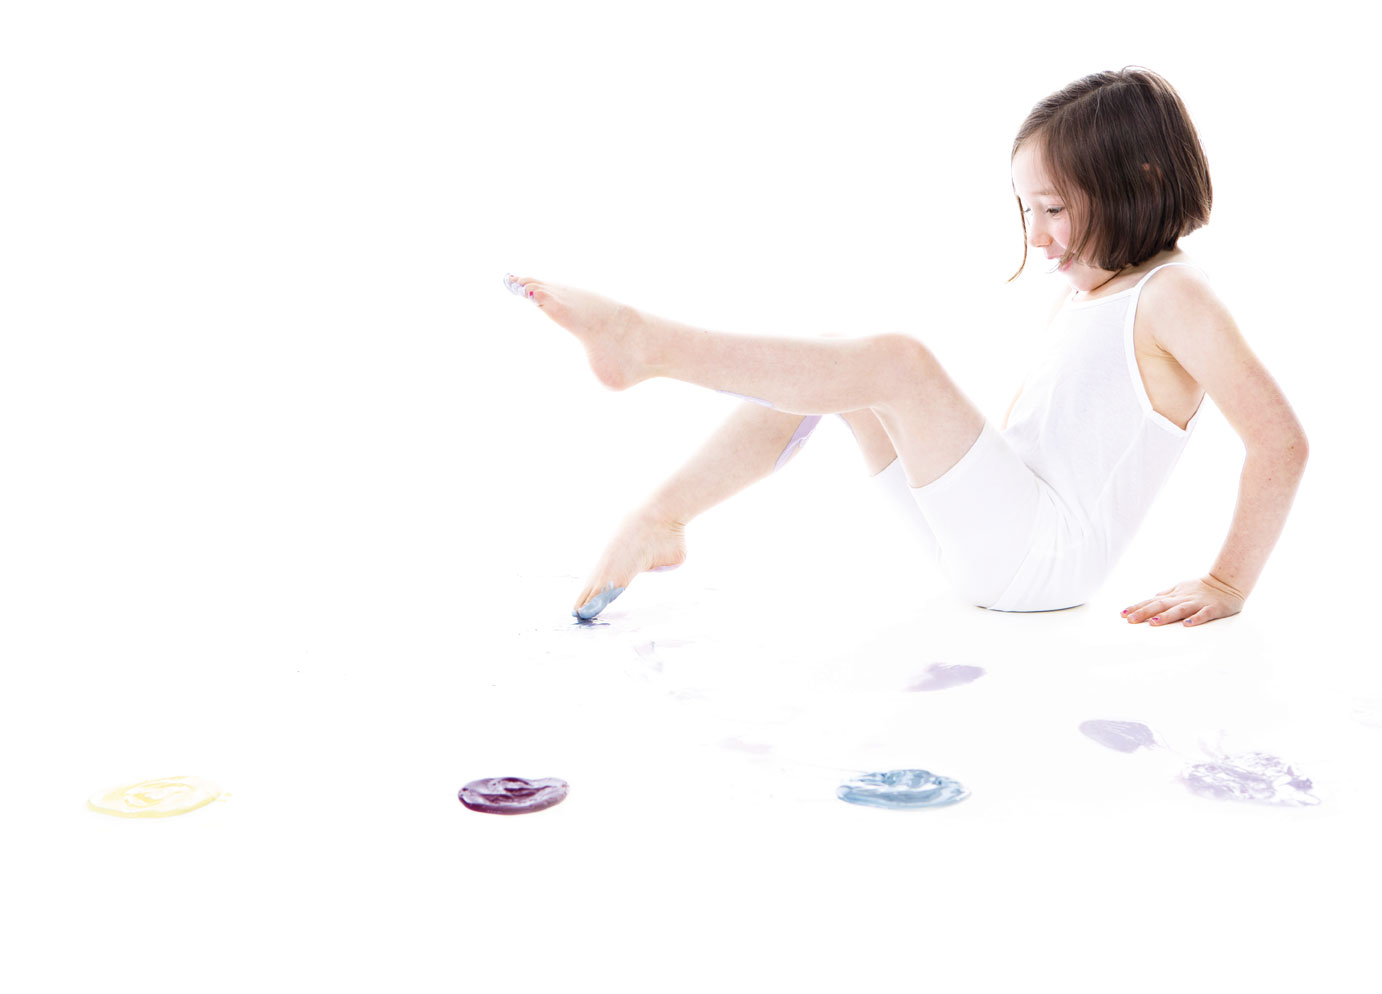 Andrea-Burolla-Photography-denver-childrens-photographer-kids-paint-sessions-little-girl-ballerina-toes-playing